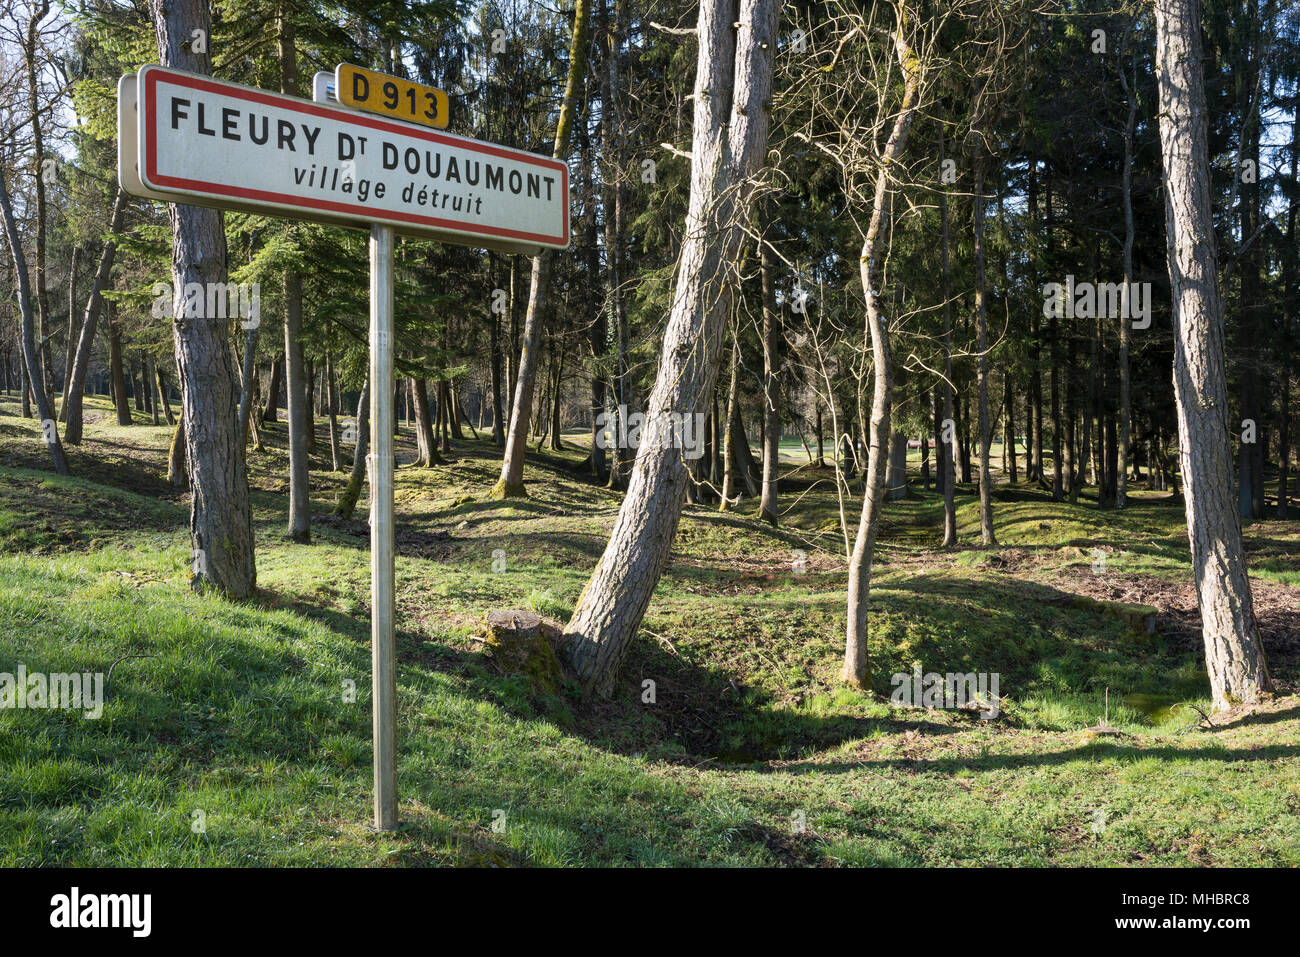 Site of the destroyed village Fleury-devant-Douaumont, grenade funnel overgrown by forest, in front sign for warningStock Photo